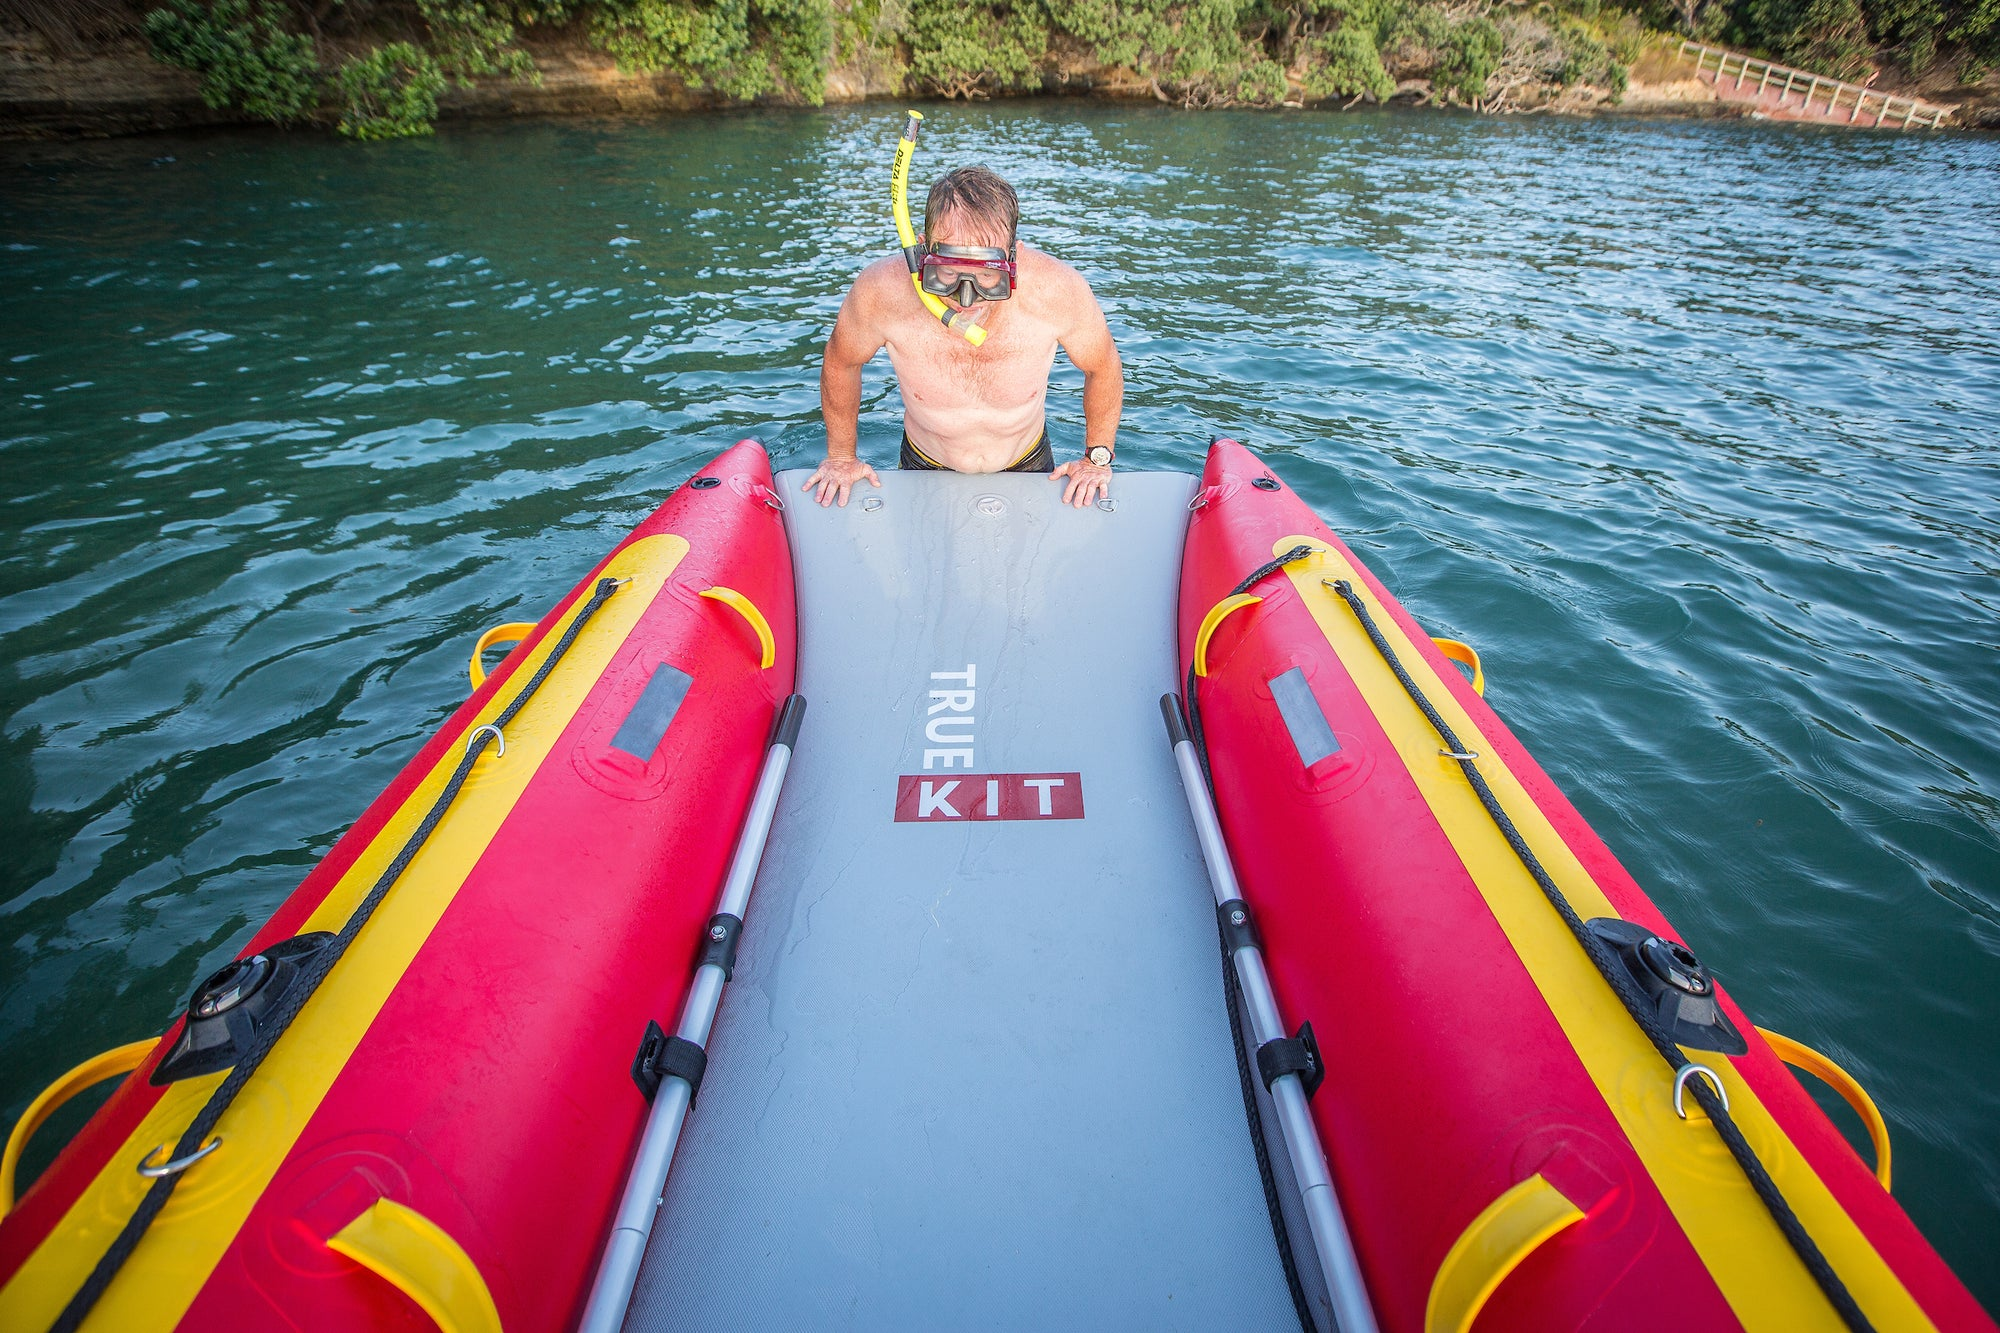 Discovery inflatable catamarans are easy to climb into from the water